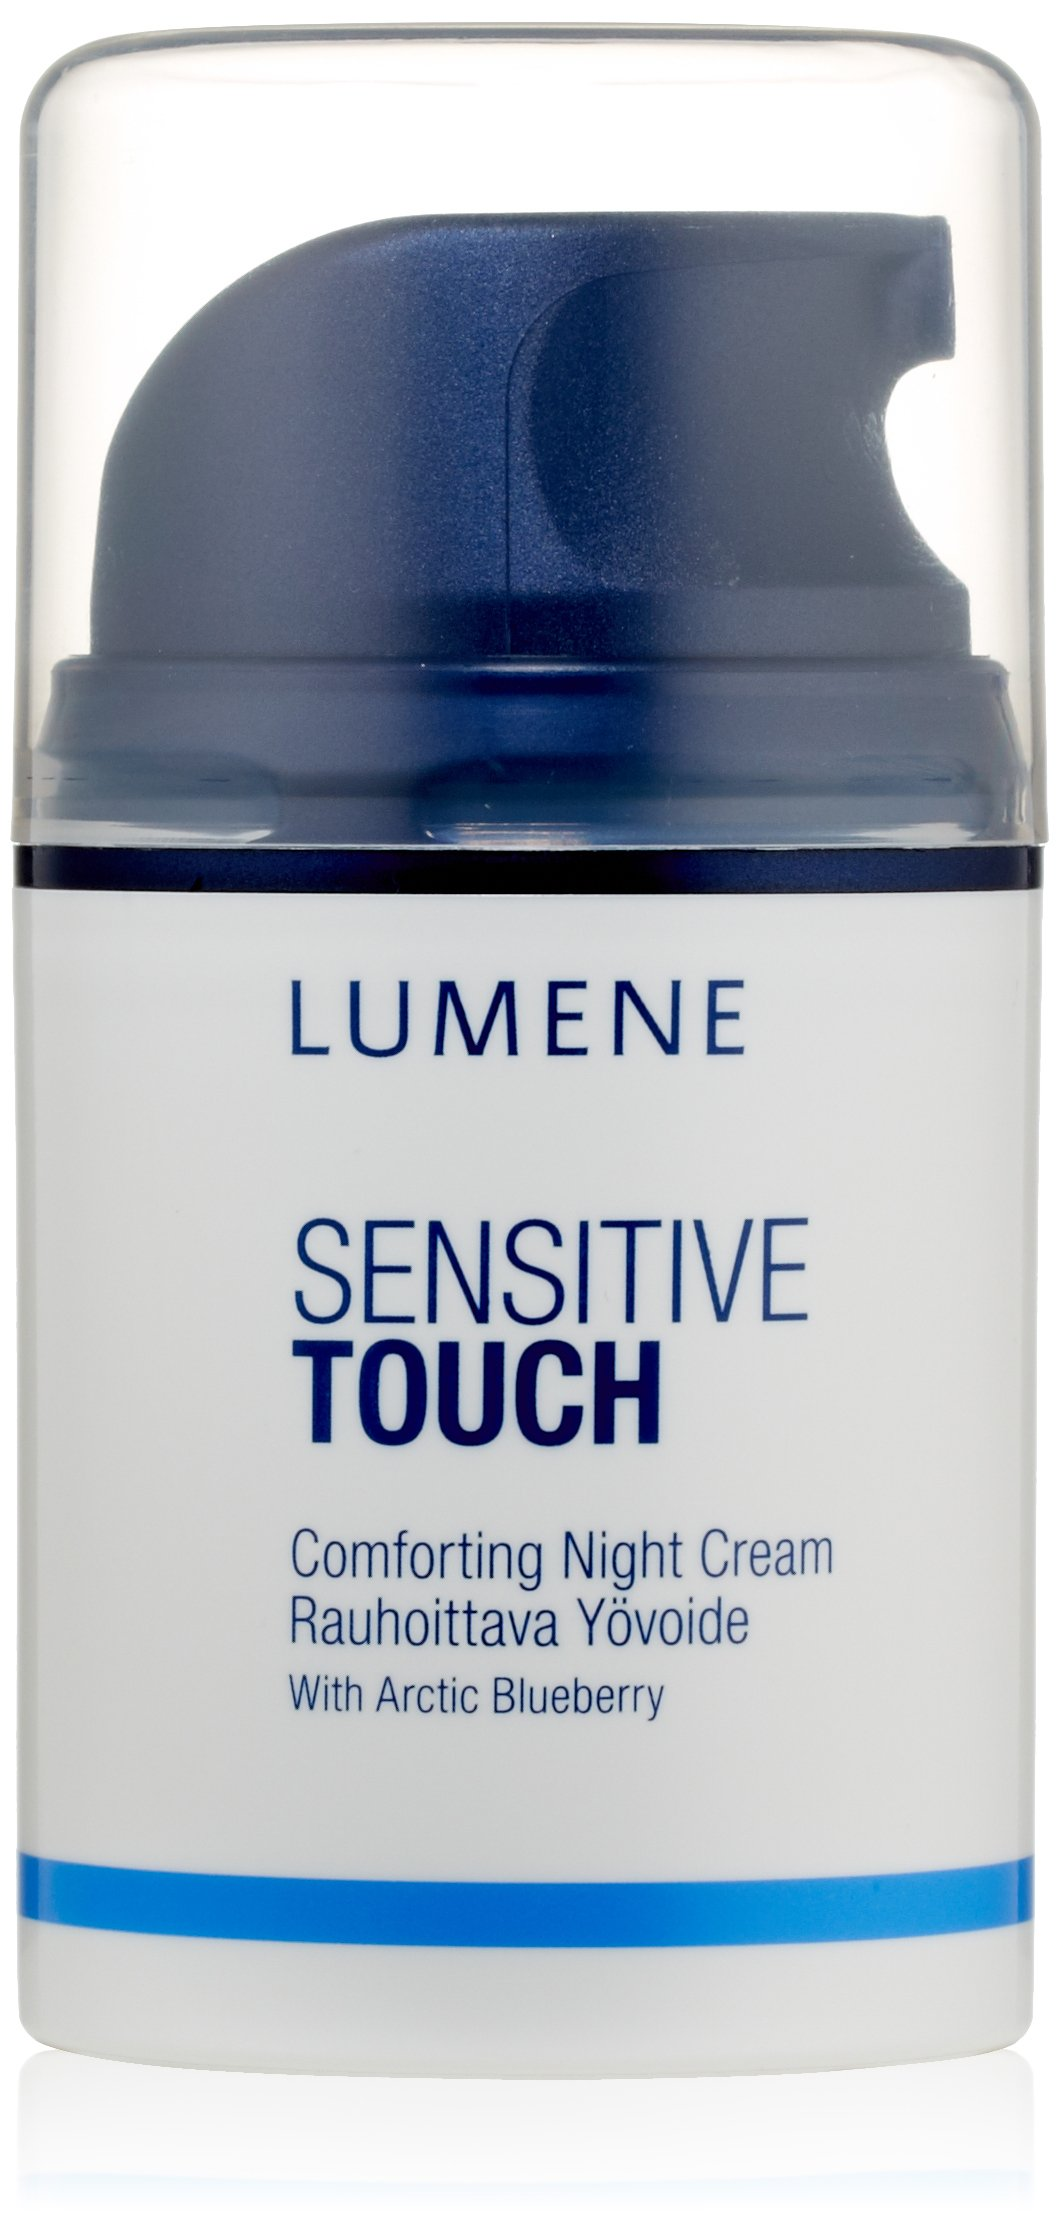 lumene sensitive touch day cream